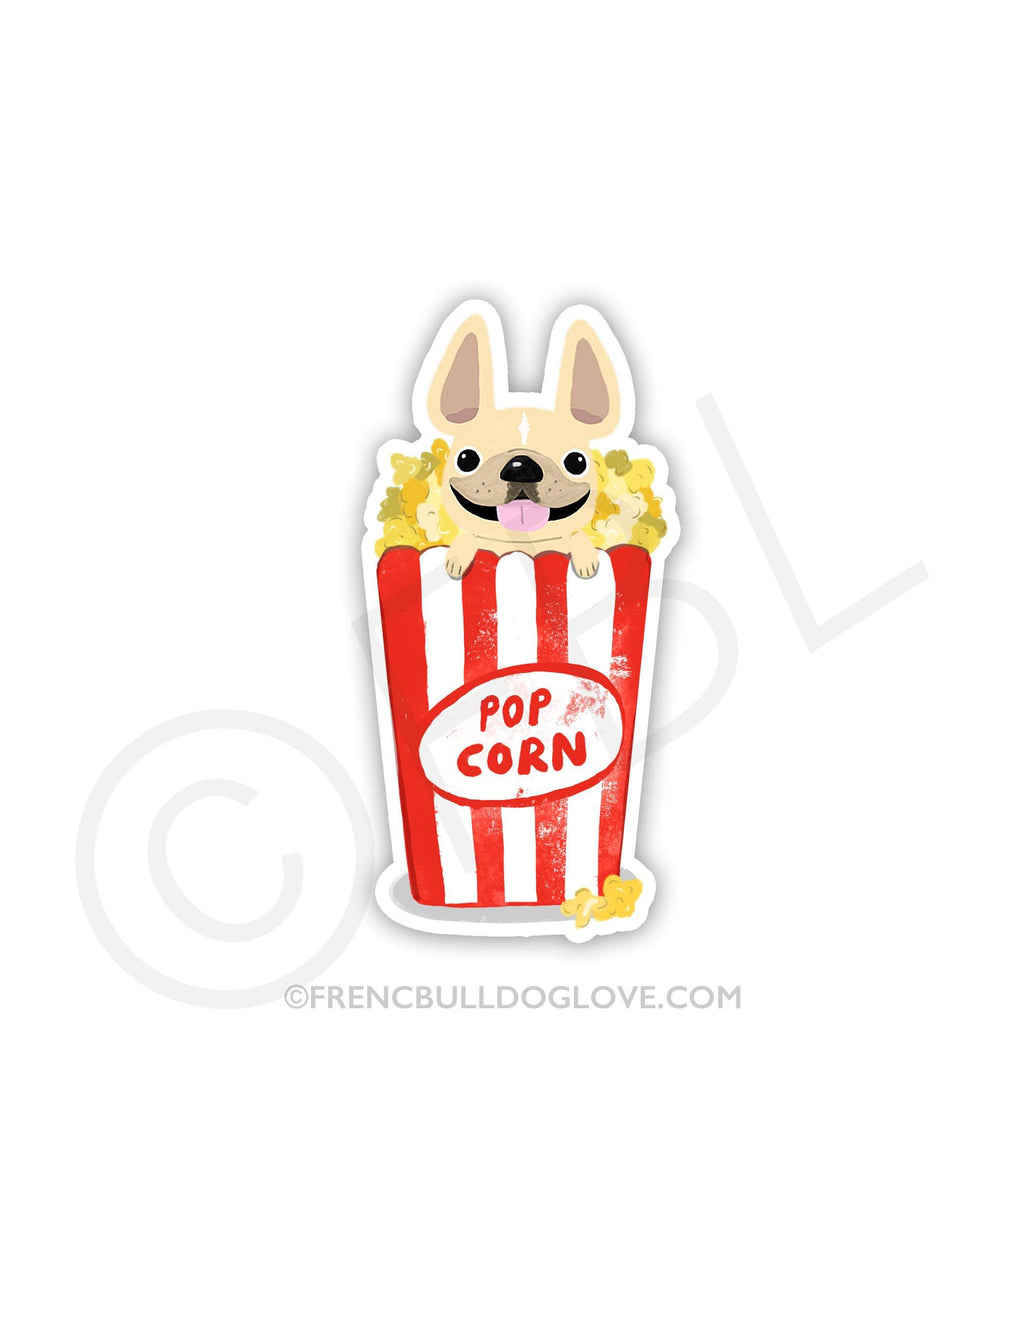 #100DAYPROJECT 34/100 - POPCORN VINYL FRENCH BULLDOG STICKER